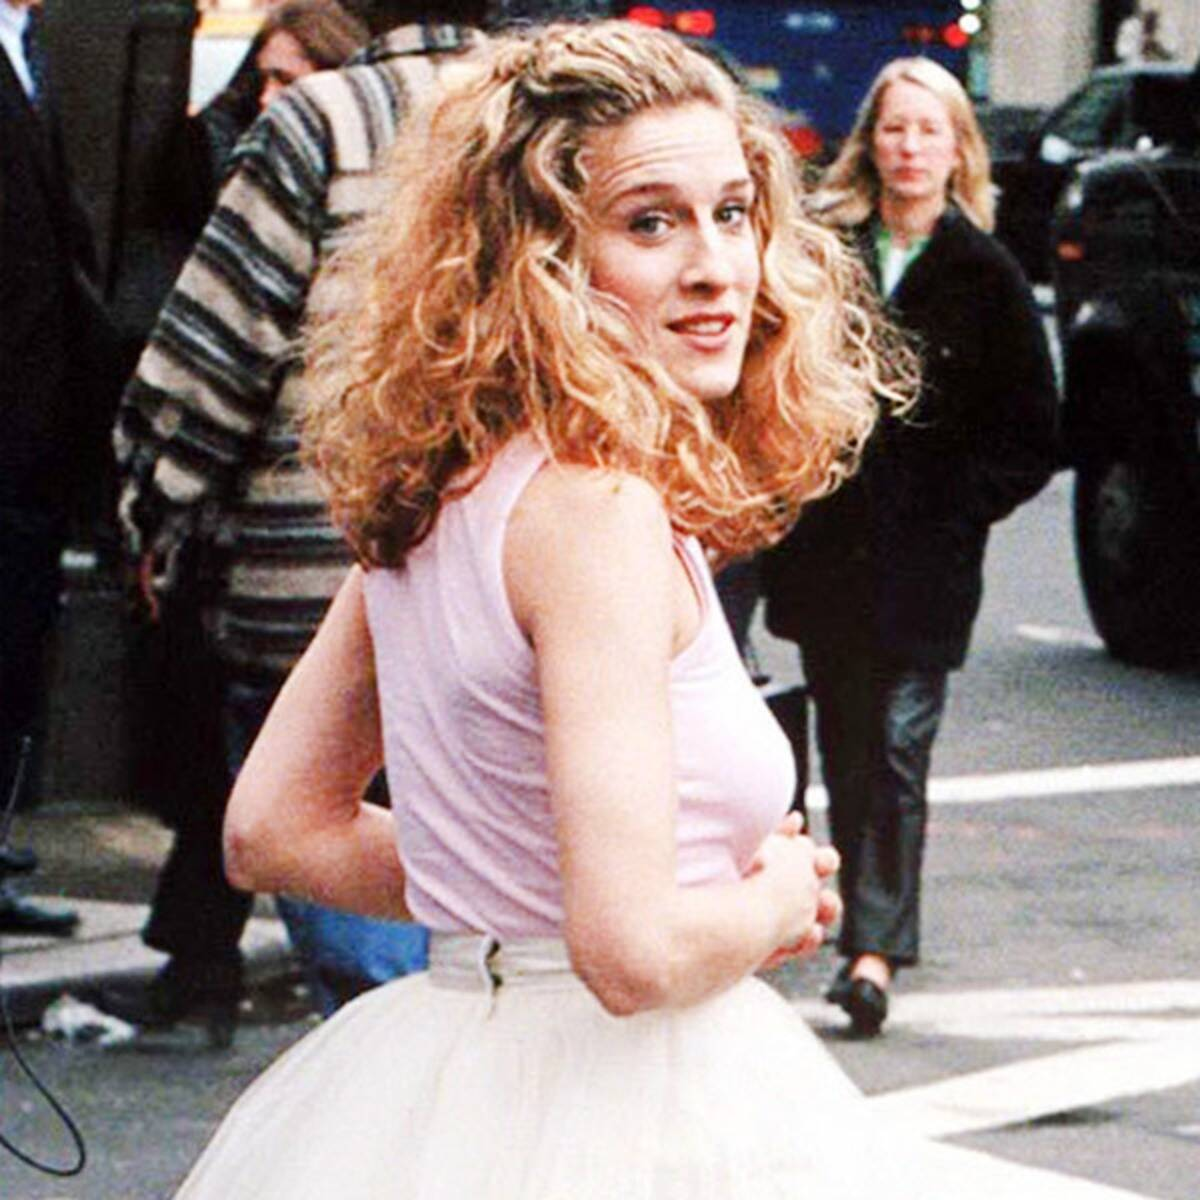 rs 600x600 180605164911 600 Sarah Jessica Parker Most Iconic Sex City Outfits 30 Things You Probably Didn't Know About Dirty Dancing